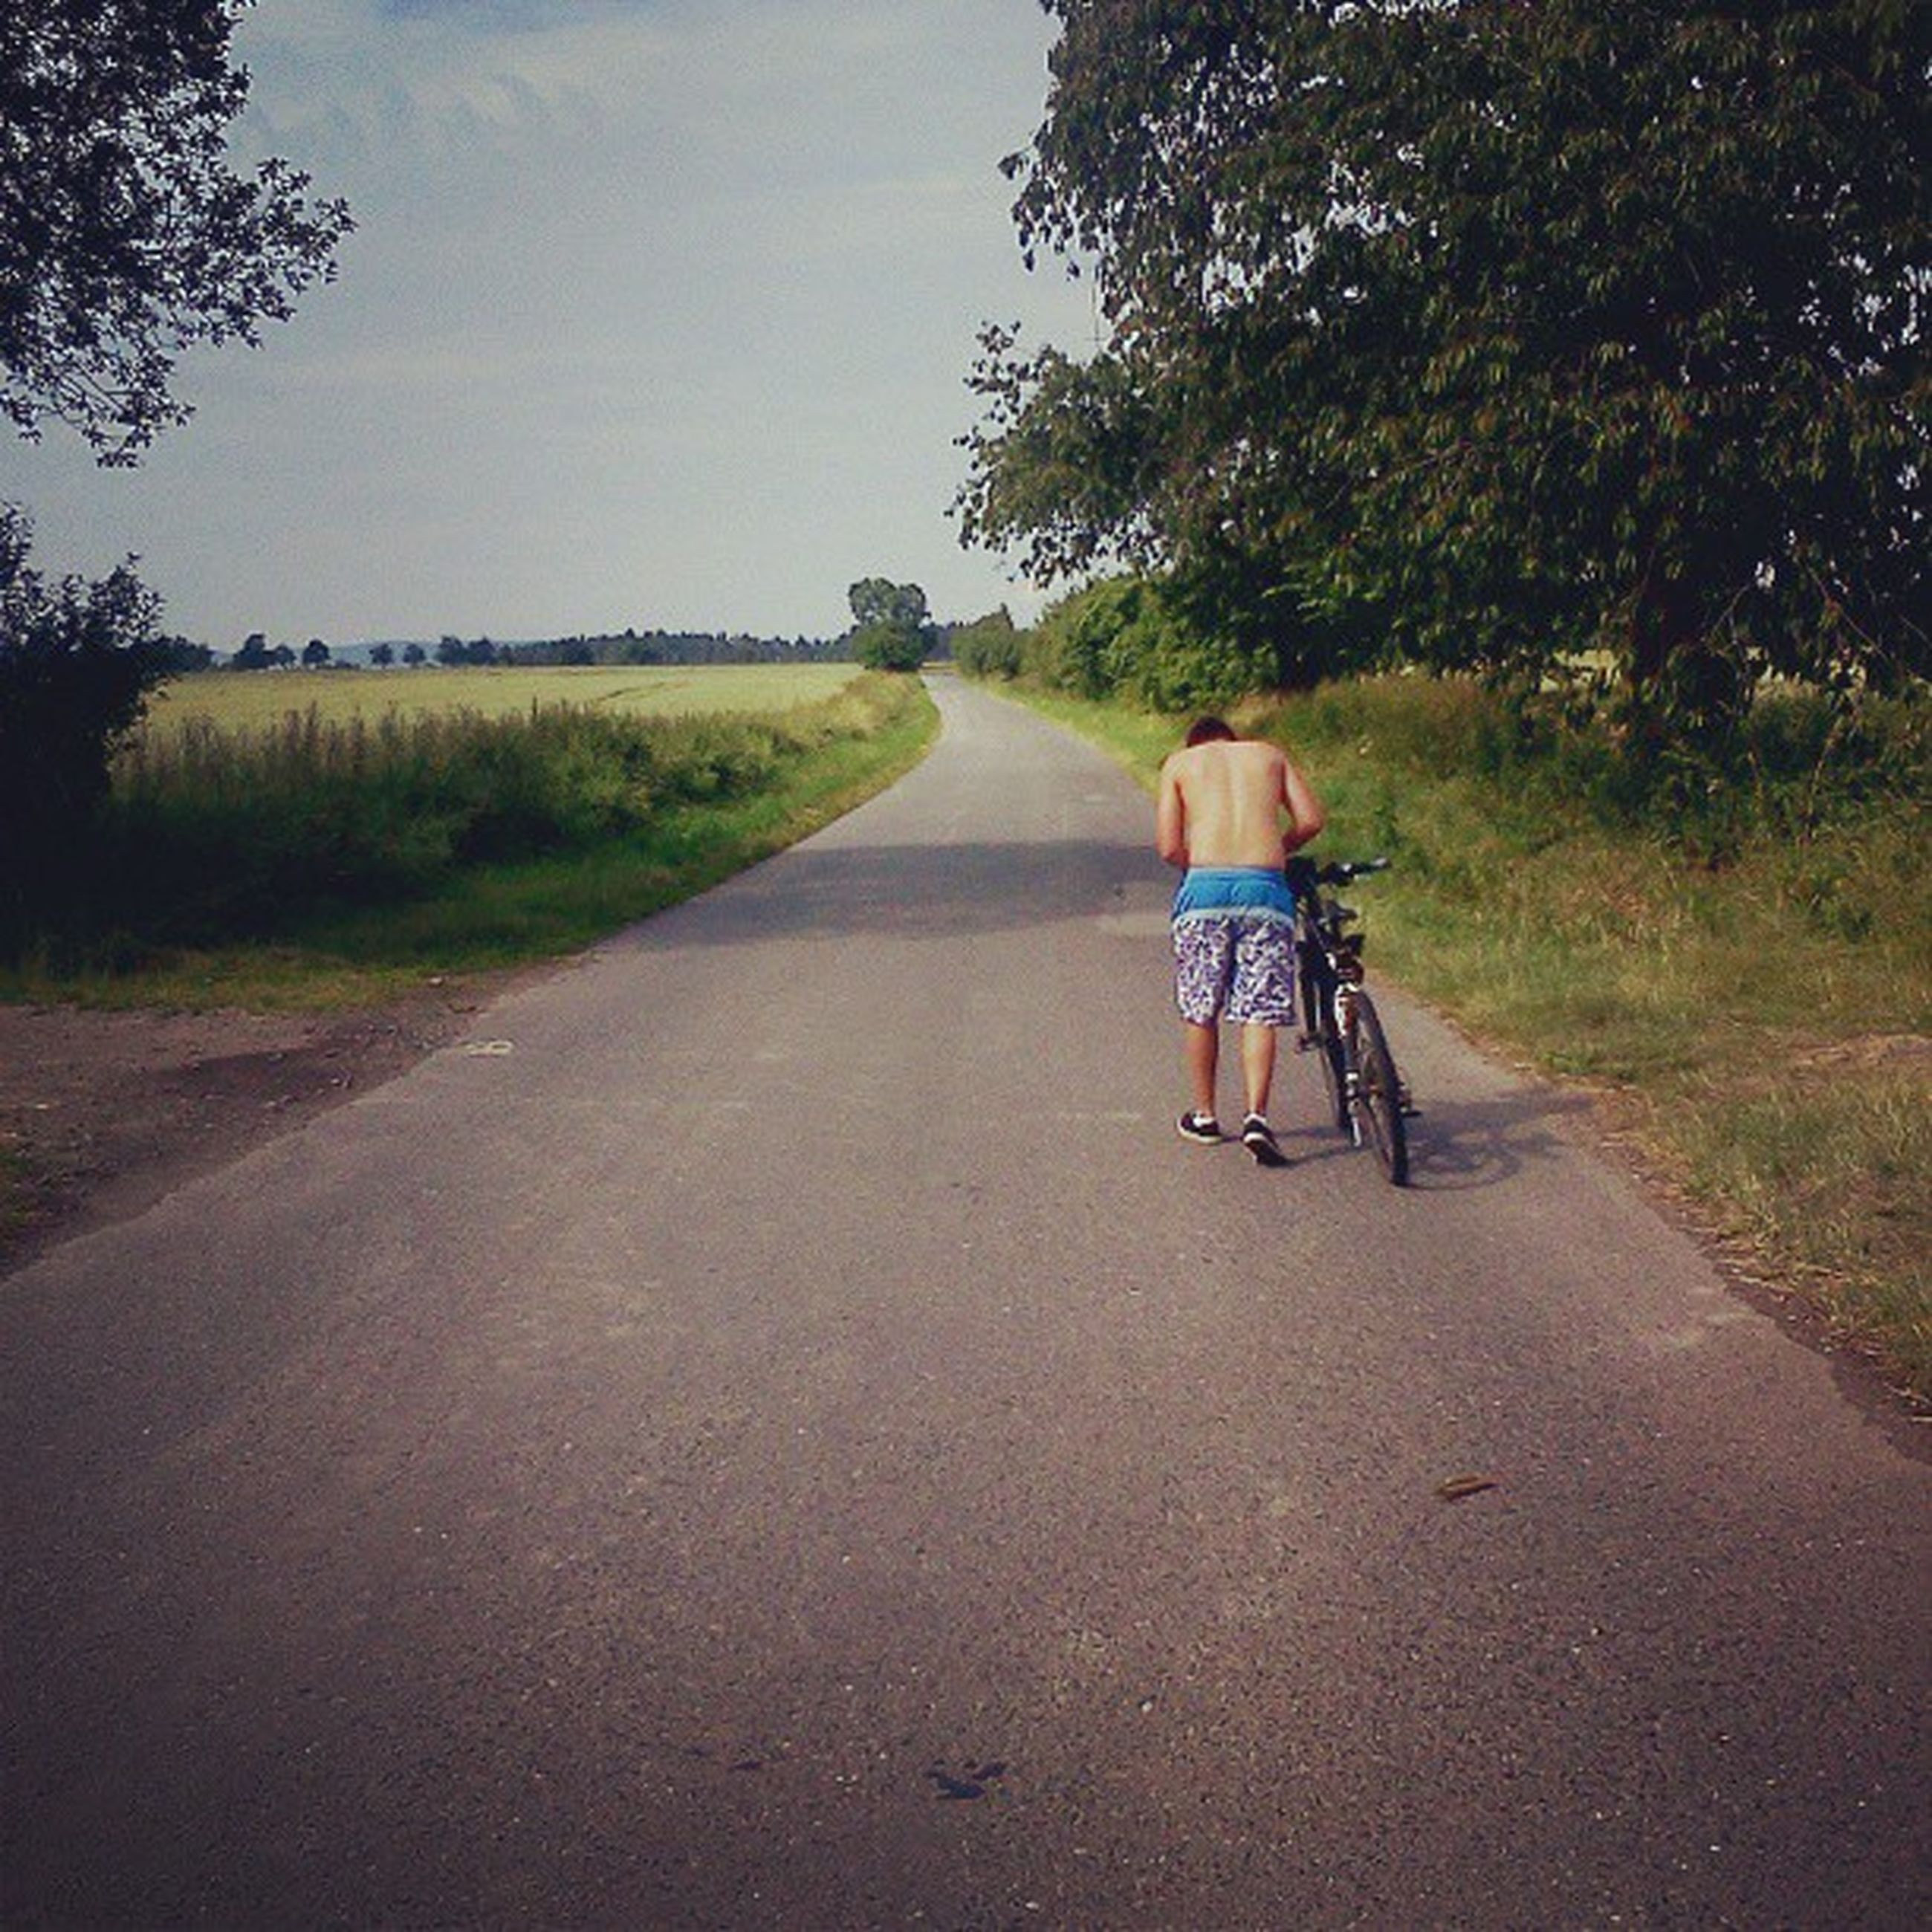 the way forward, full length, rear view, road, tree, walking, transportation, lifestyles, diminishing perspective, leisure activity, grass, country road, dirt road, vanishing point, bicycle, men, sky, landscape